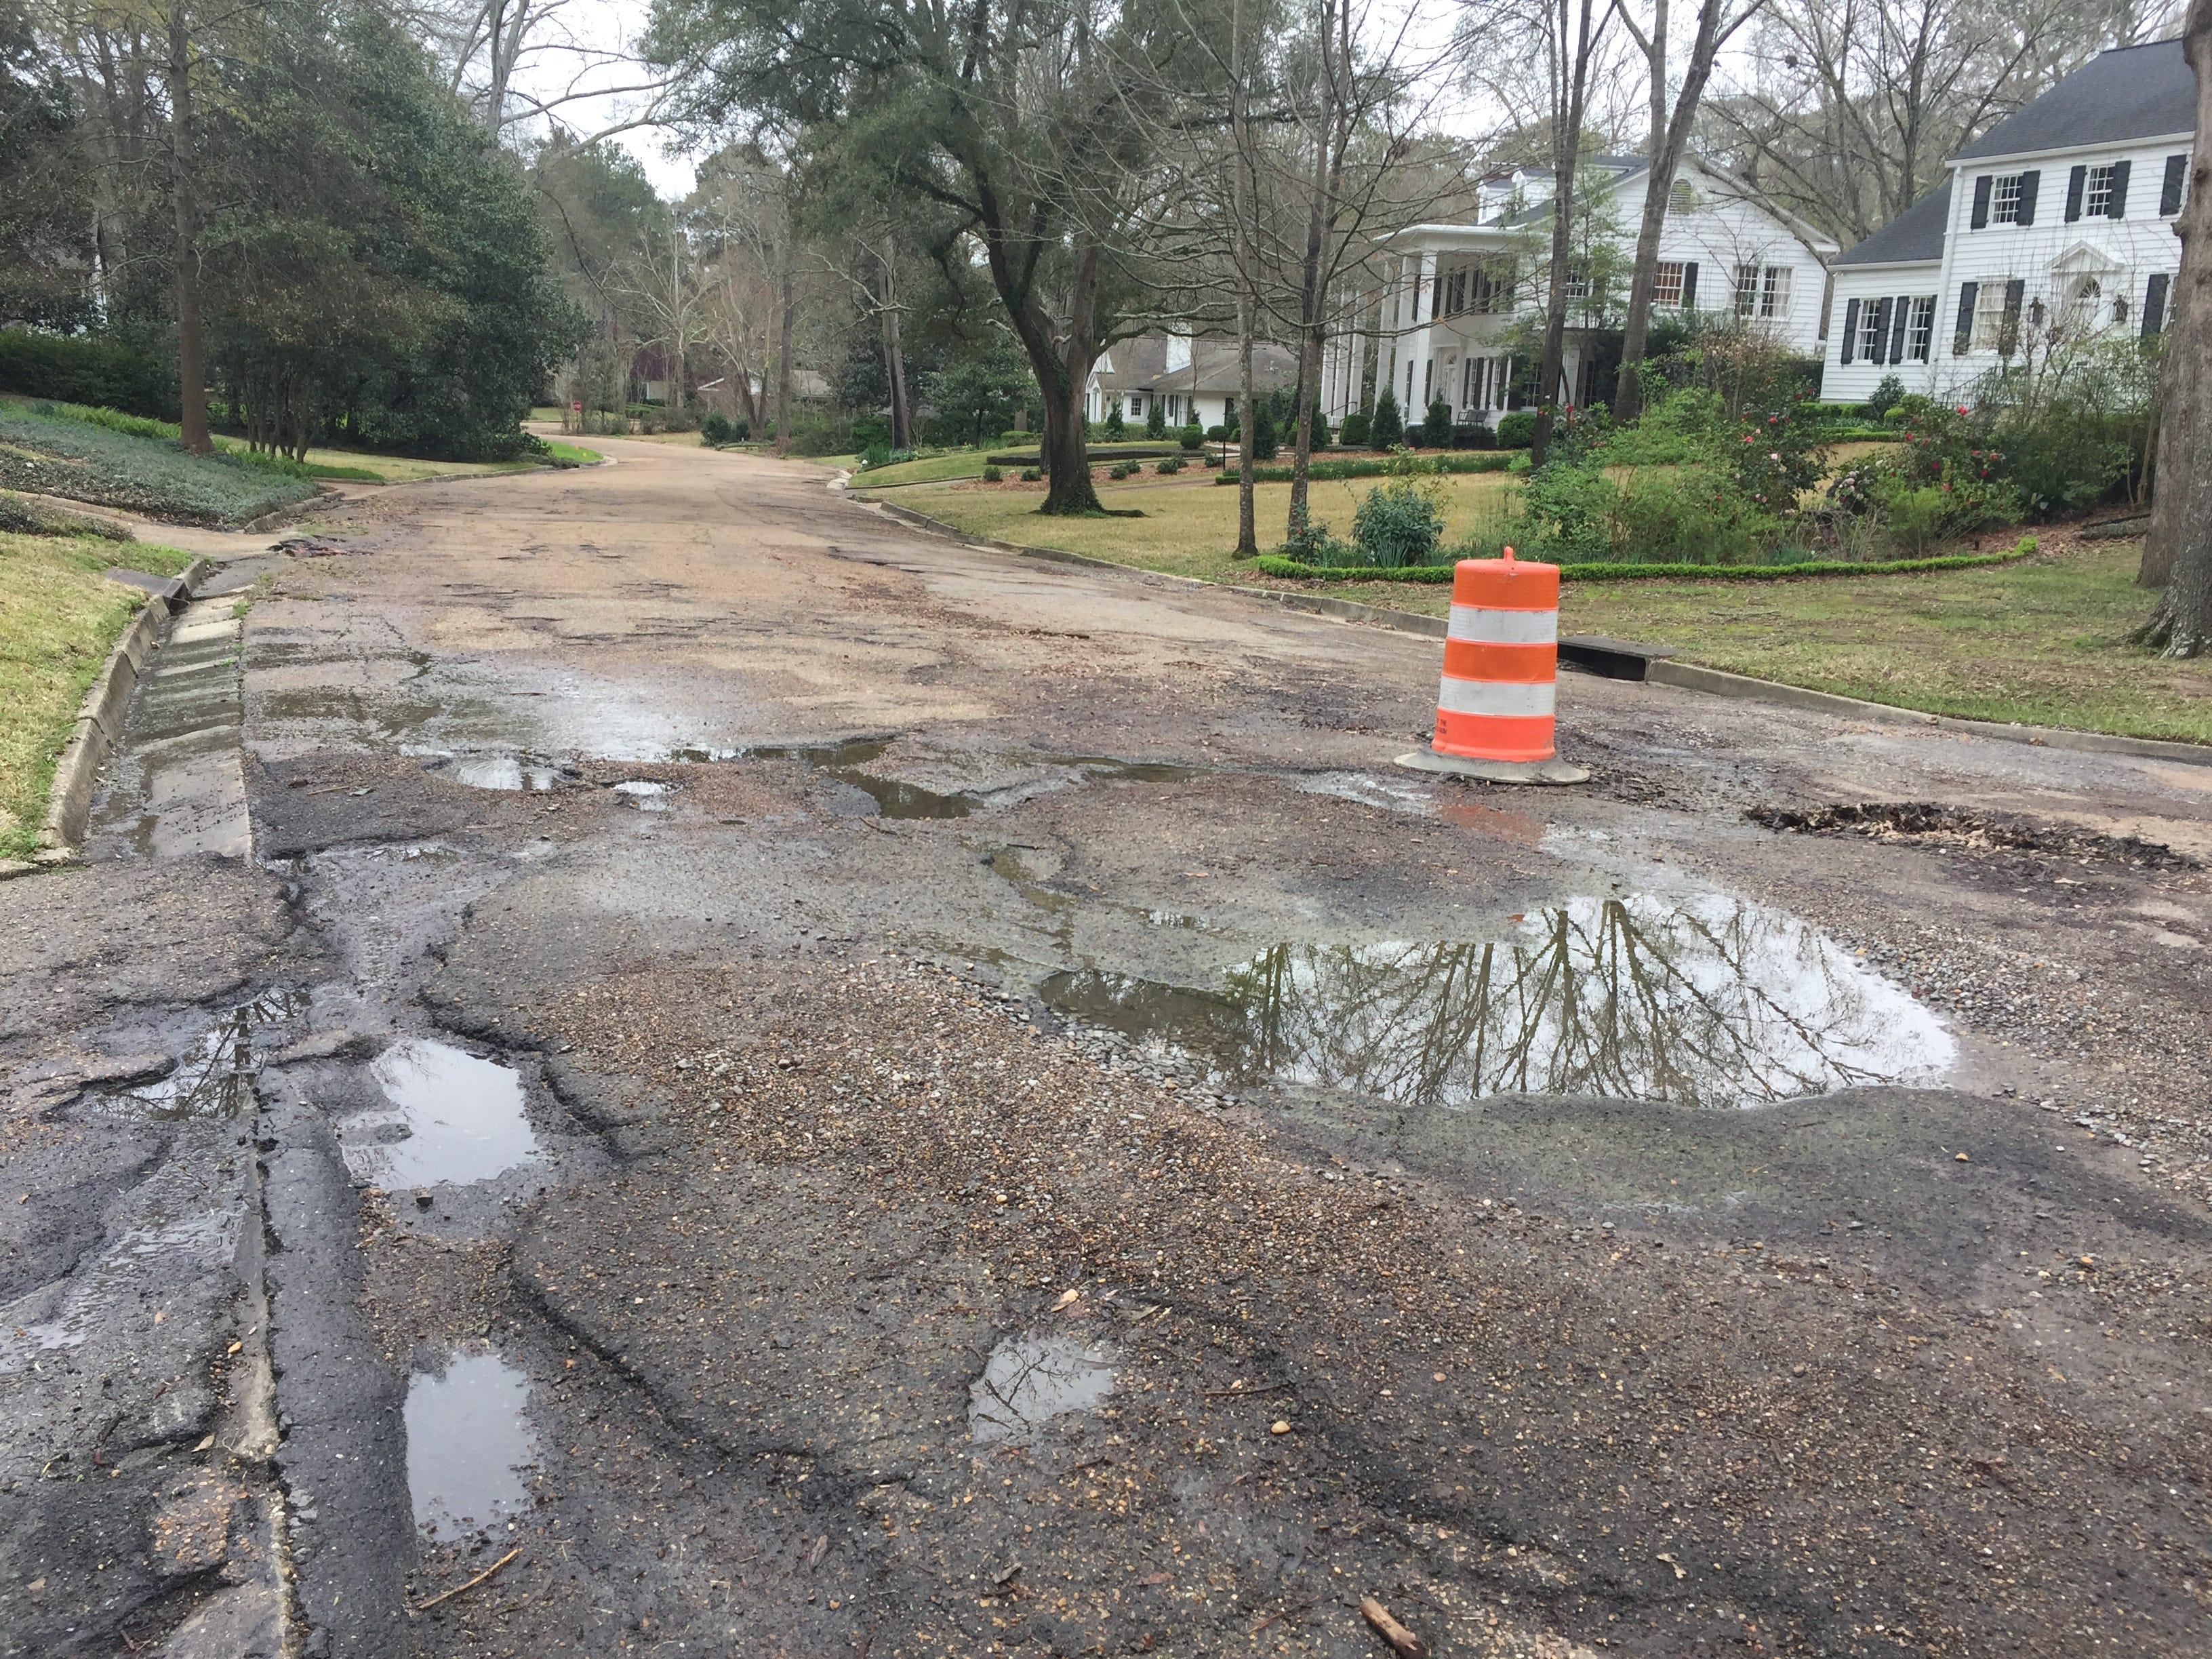 Well-kept homes on Avondale in Jackson's Fondren neighborhood are separated by a street riddled with potholes and in need of repair Saturday, March 2, 2019.